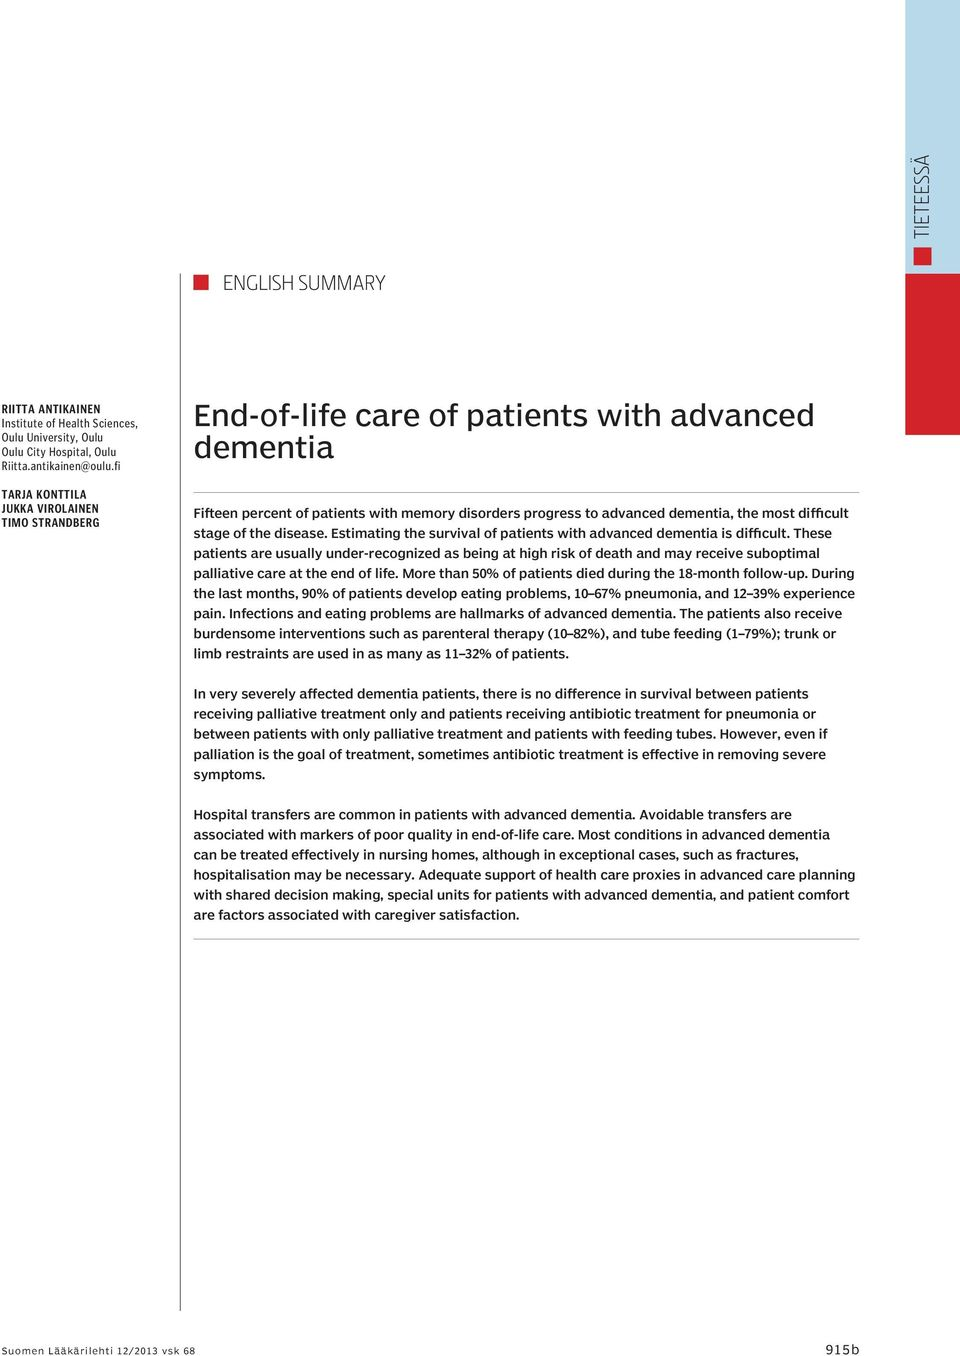 difficult stage of the disease. Estimating the survival of patients with advanced dementia is difficult.